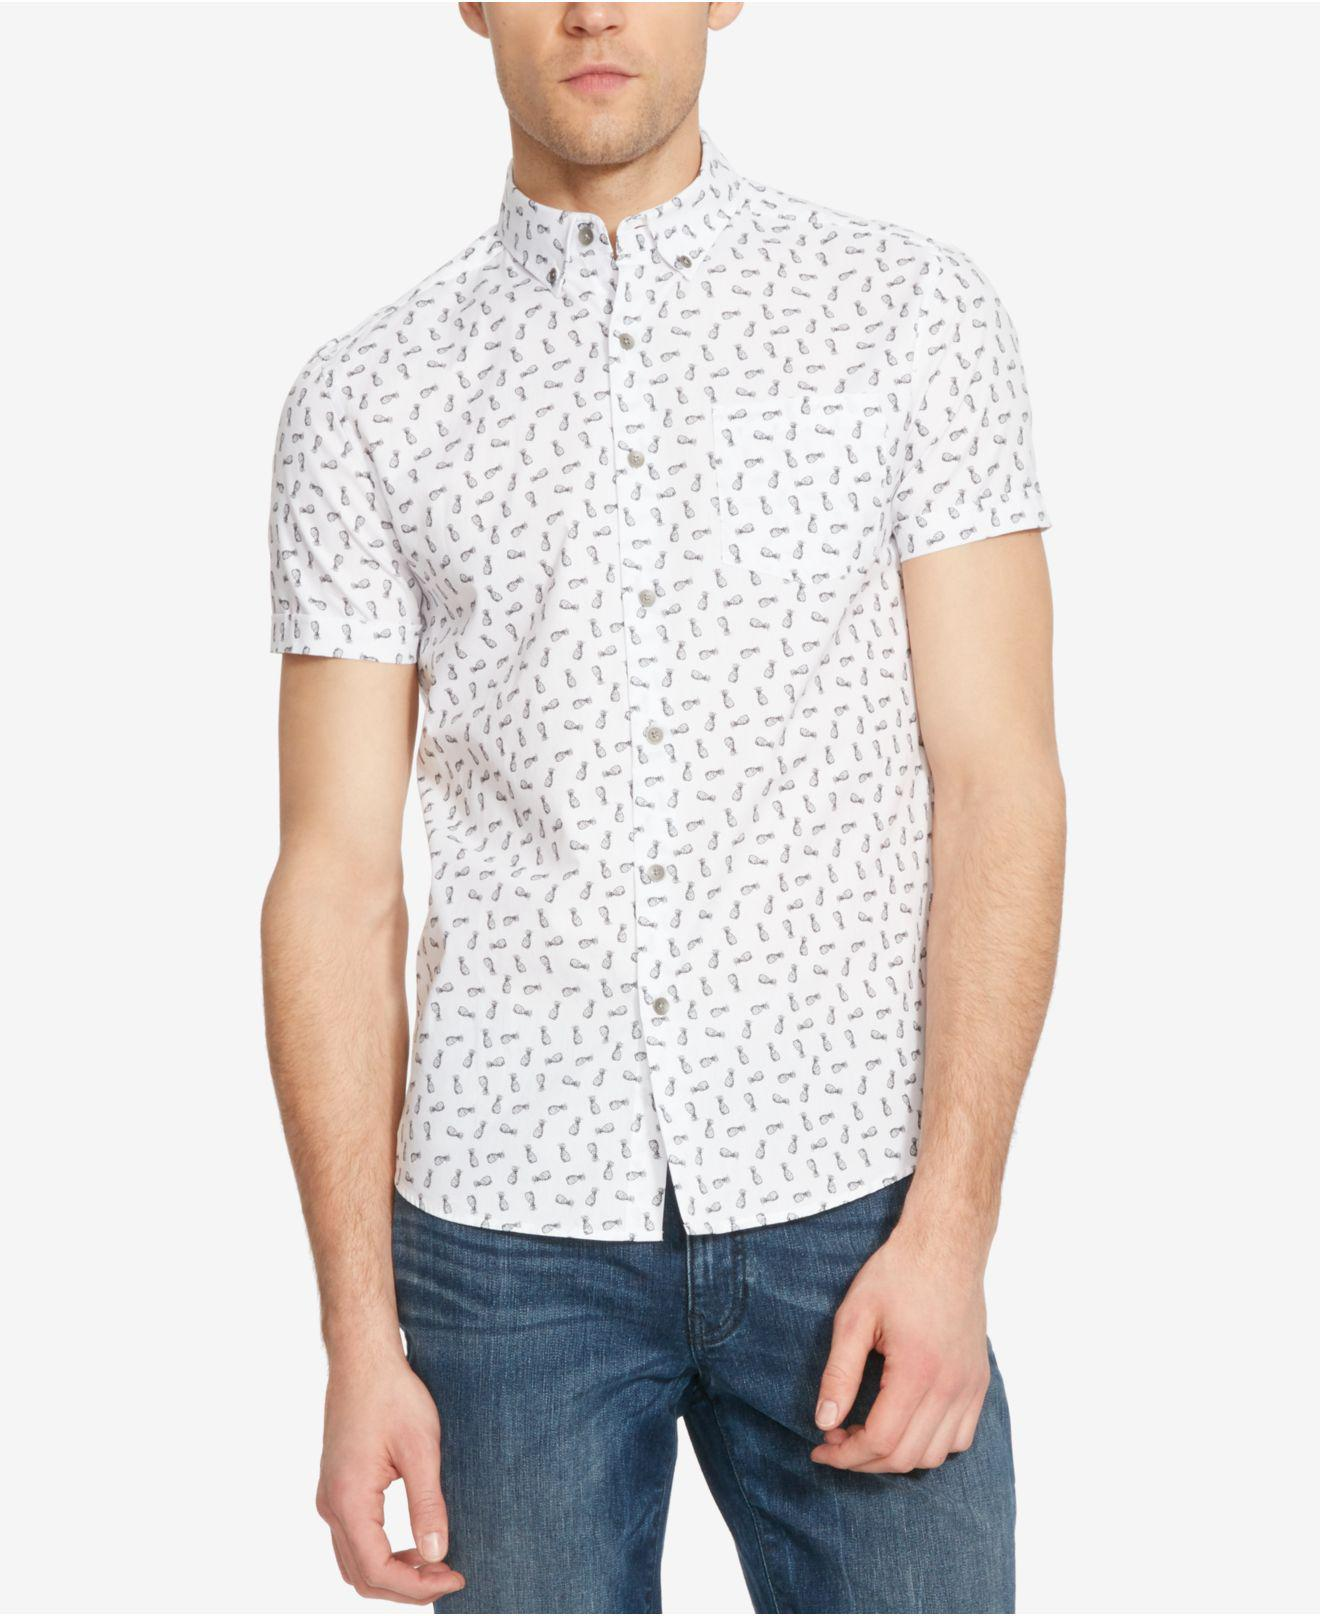 Short-Sleeve Pineapple Shirt Kenneth Cole Reaction Footlocker Finishline Sale Online Buy Cheap Low Price Fee Shipping Factory Price Discount Pay With Visa JcqhdIjN